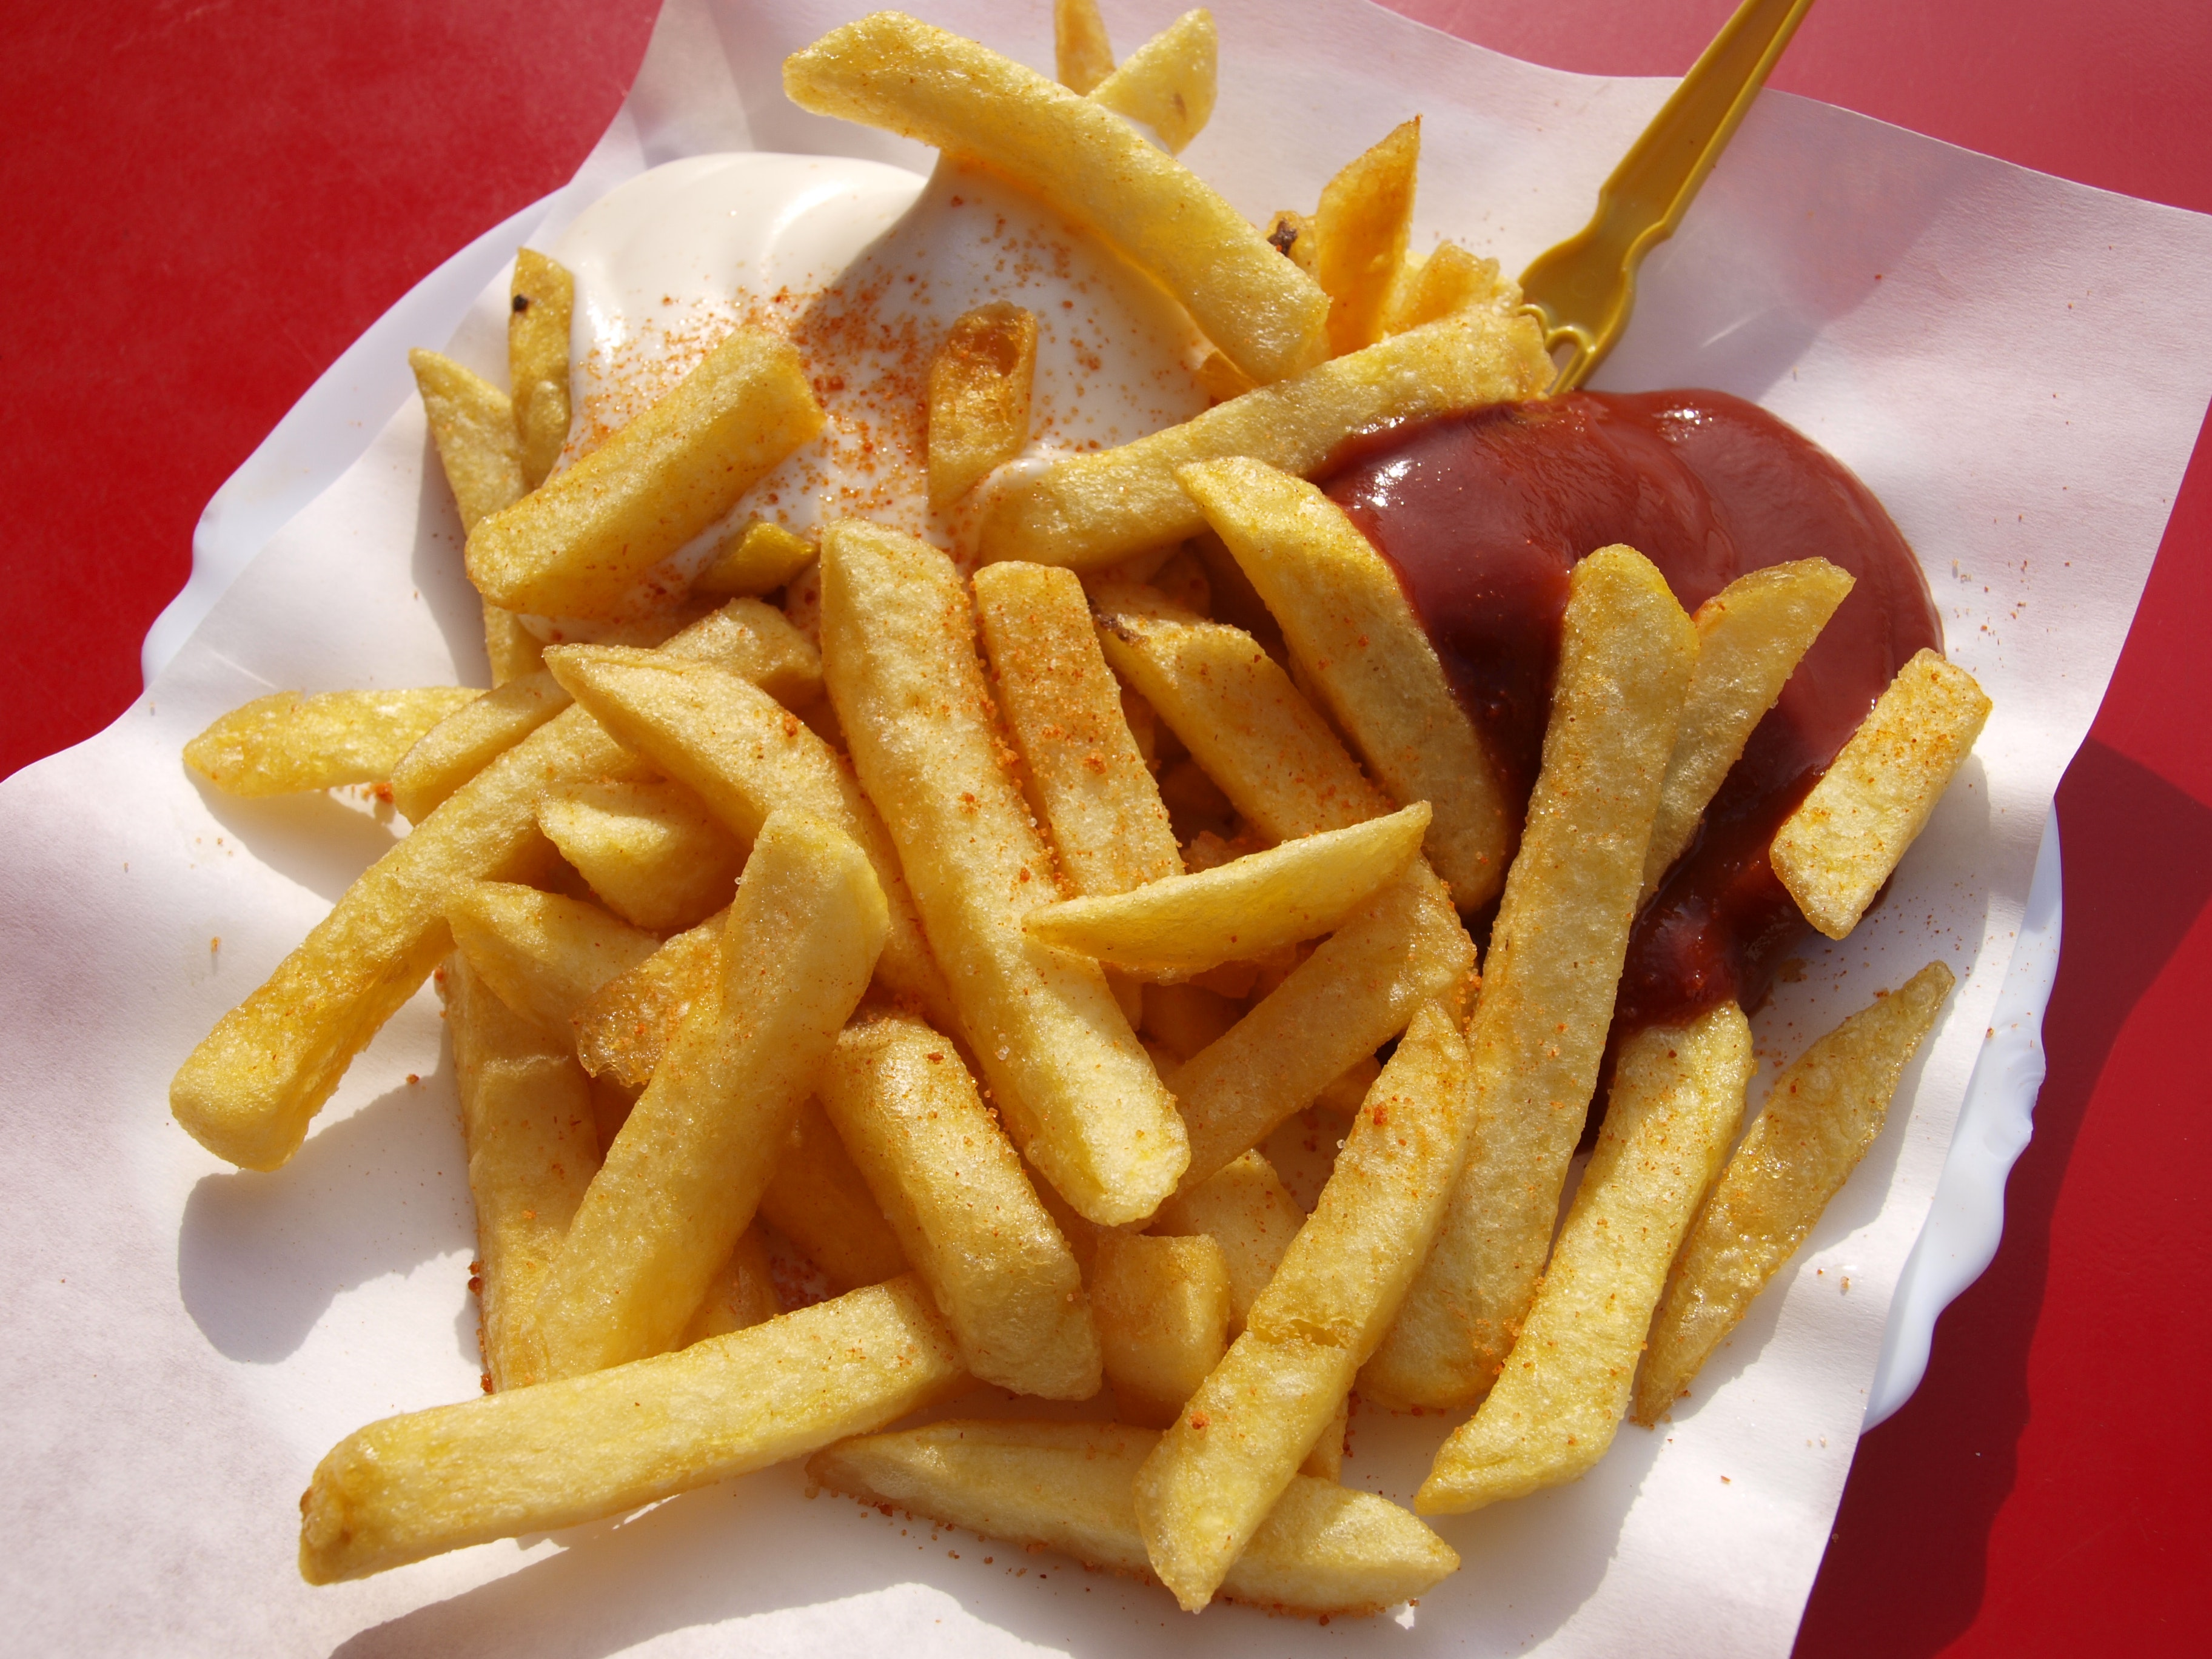 fastfood, pommes frites, fries, fritter